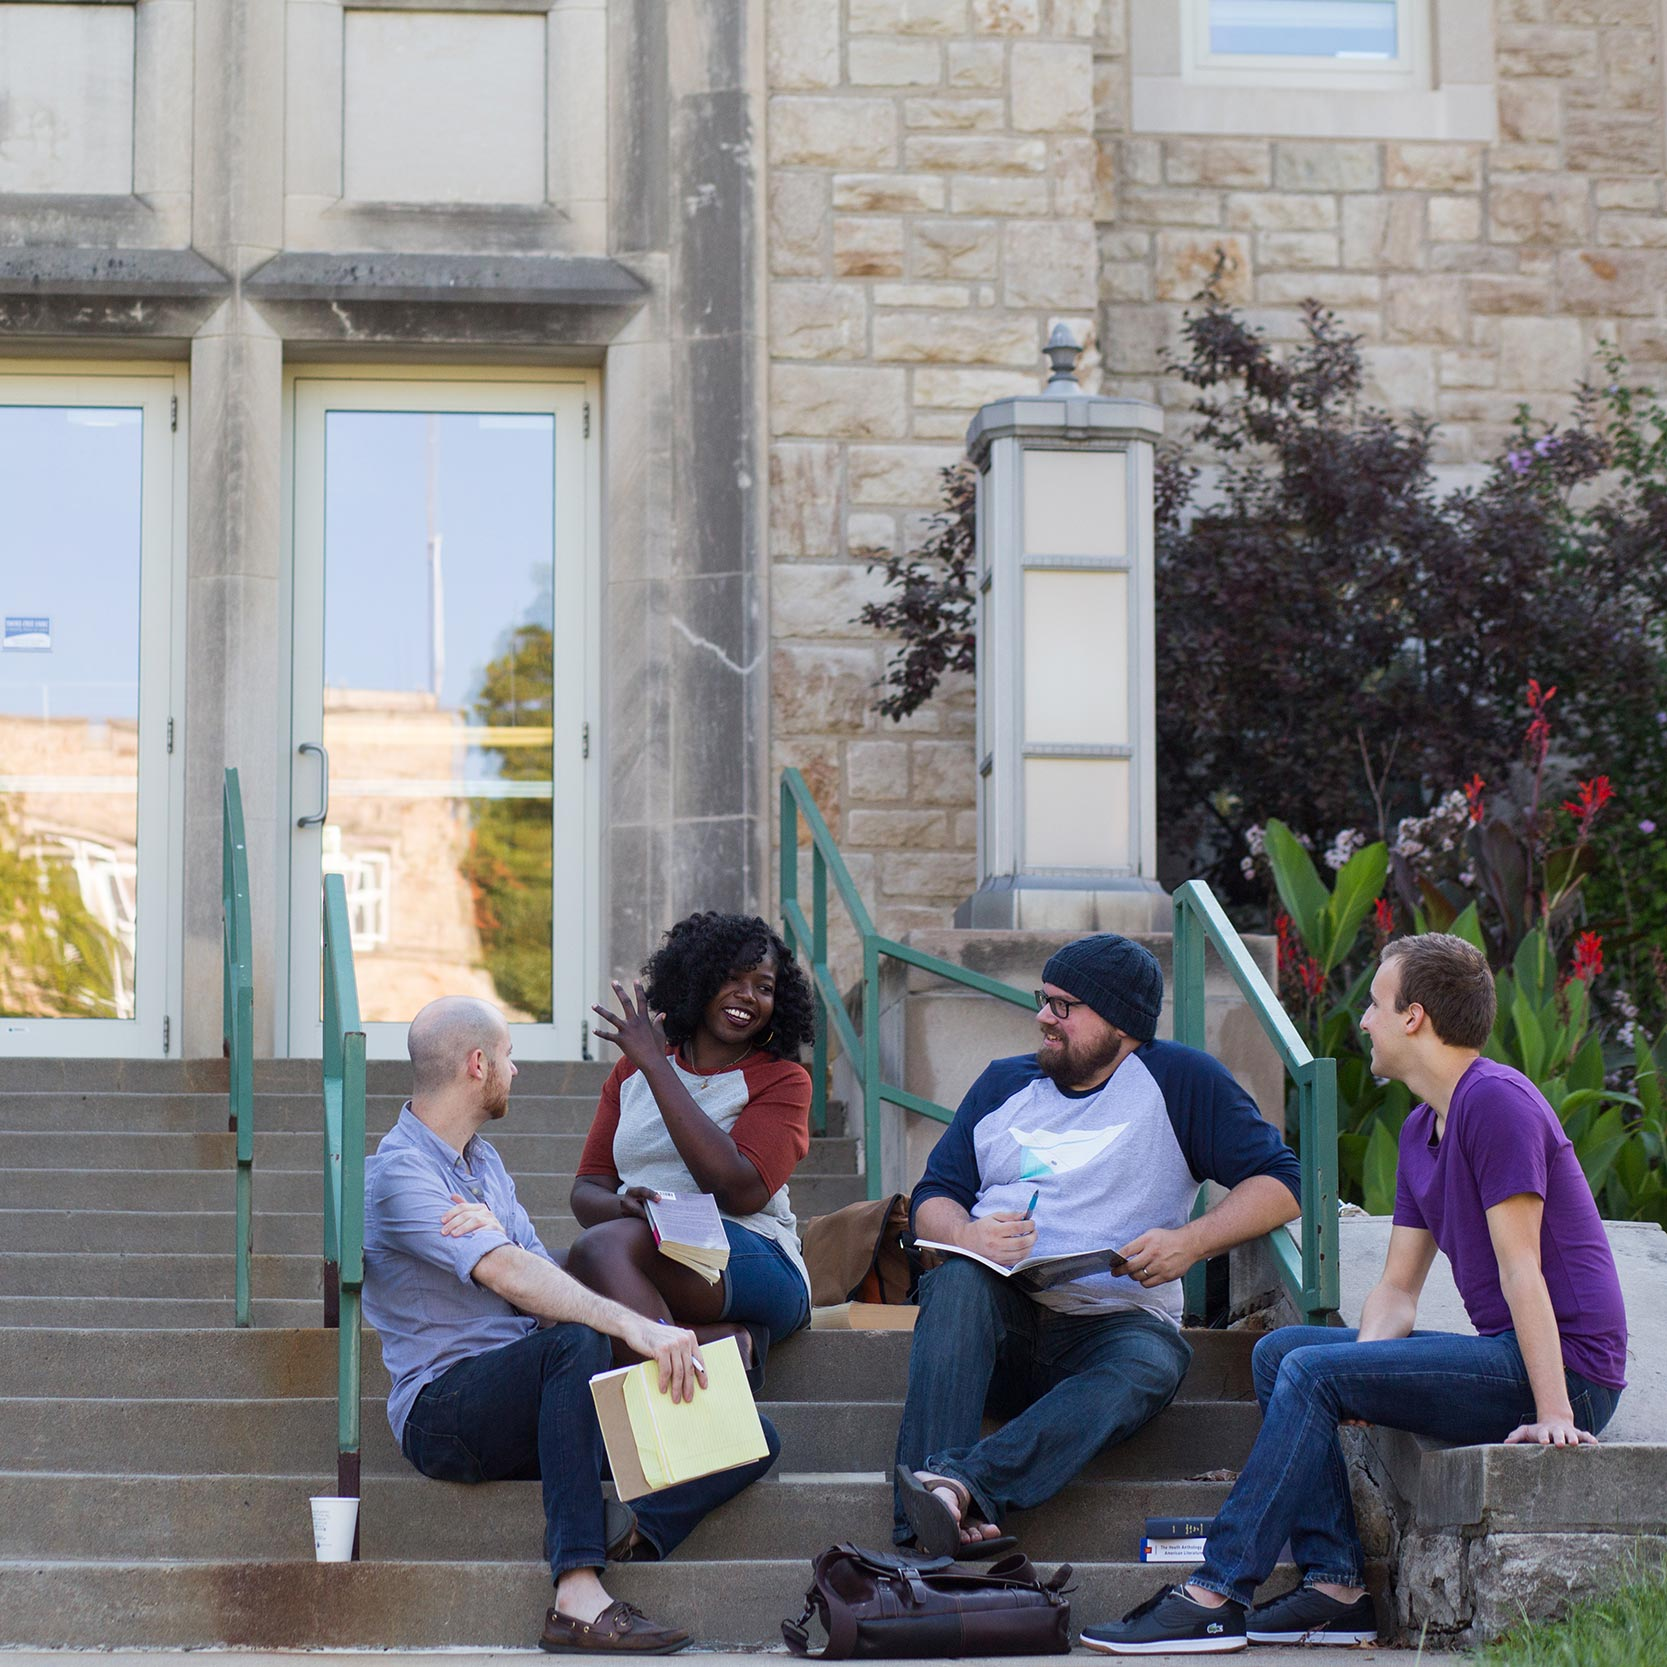 Students sit on the stairs in front of a UMKC academic building